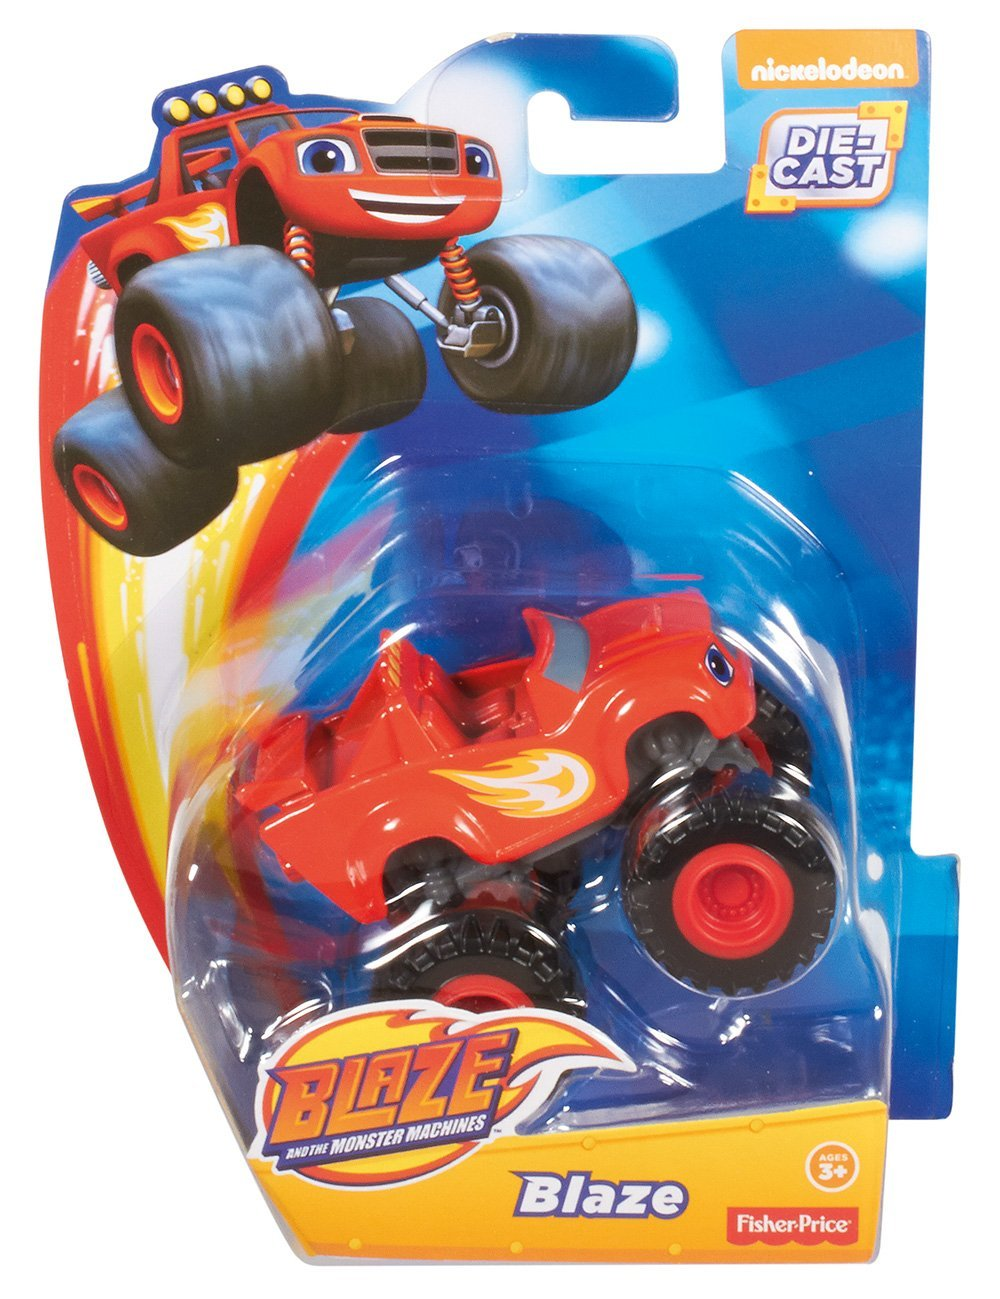 blaze-y-los-monster-machines-vehiculo-blaze-color-rojo-mattel-cgf21